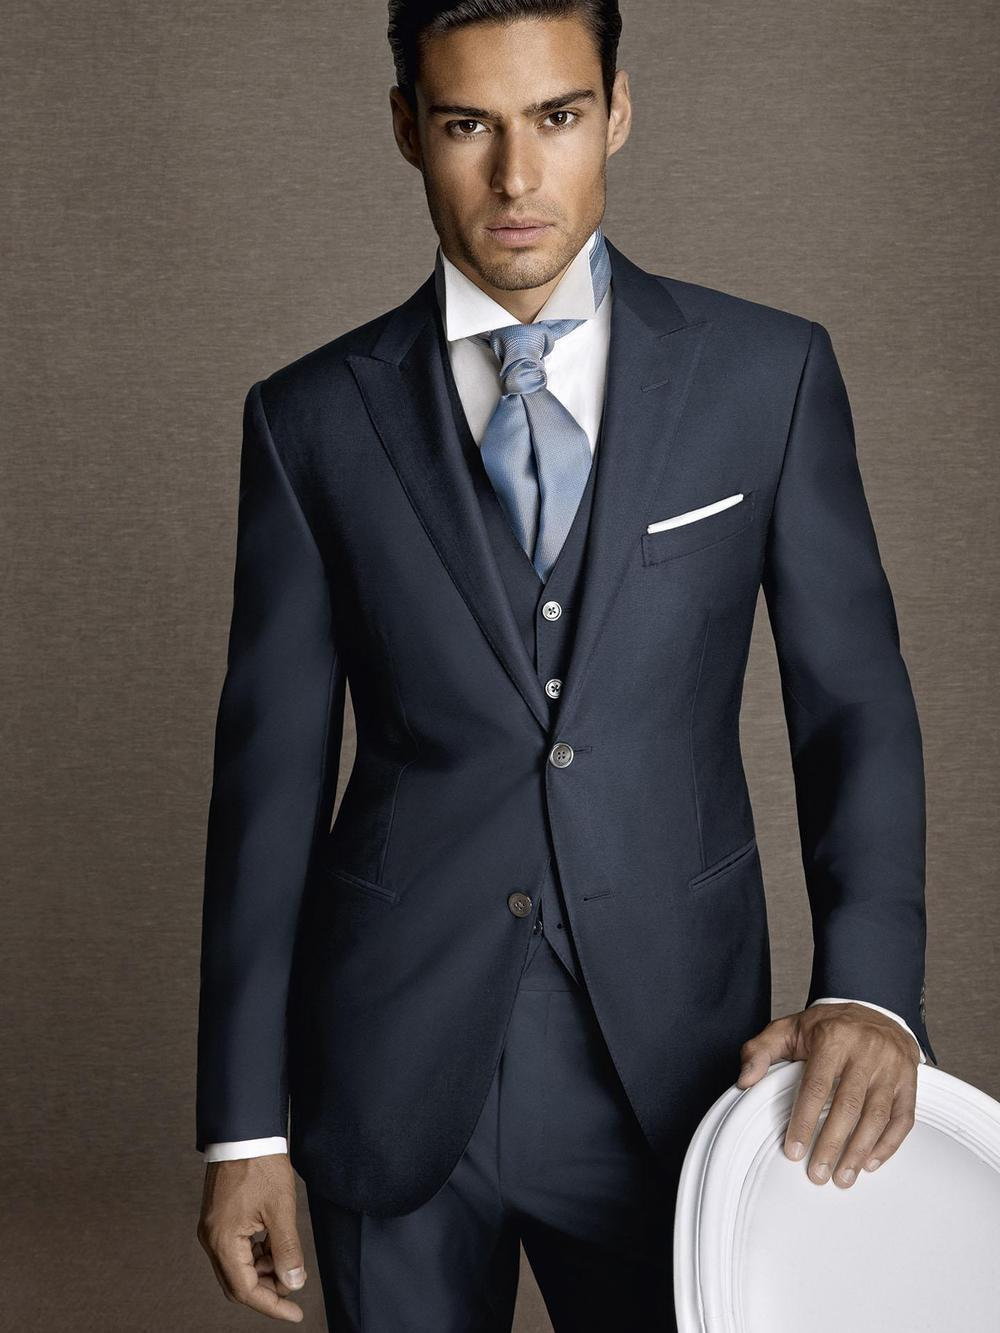 High Quality Mens Navy Suit-Buy Cheap Mens Navy Suit lots from